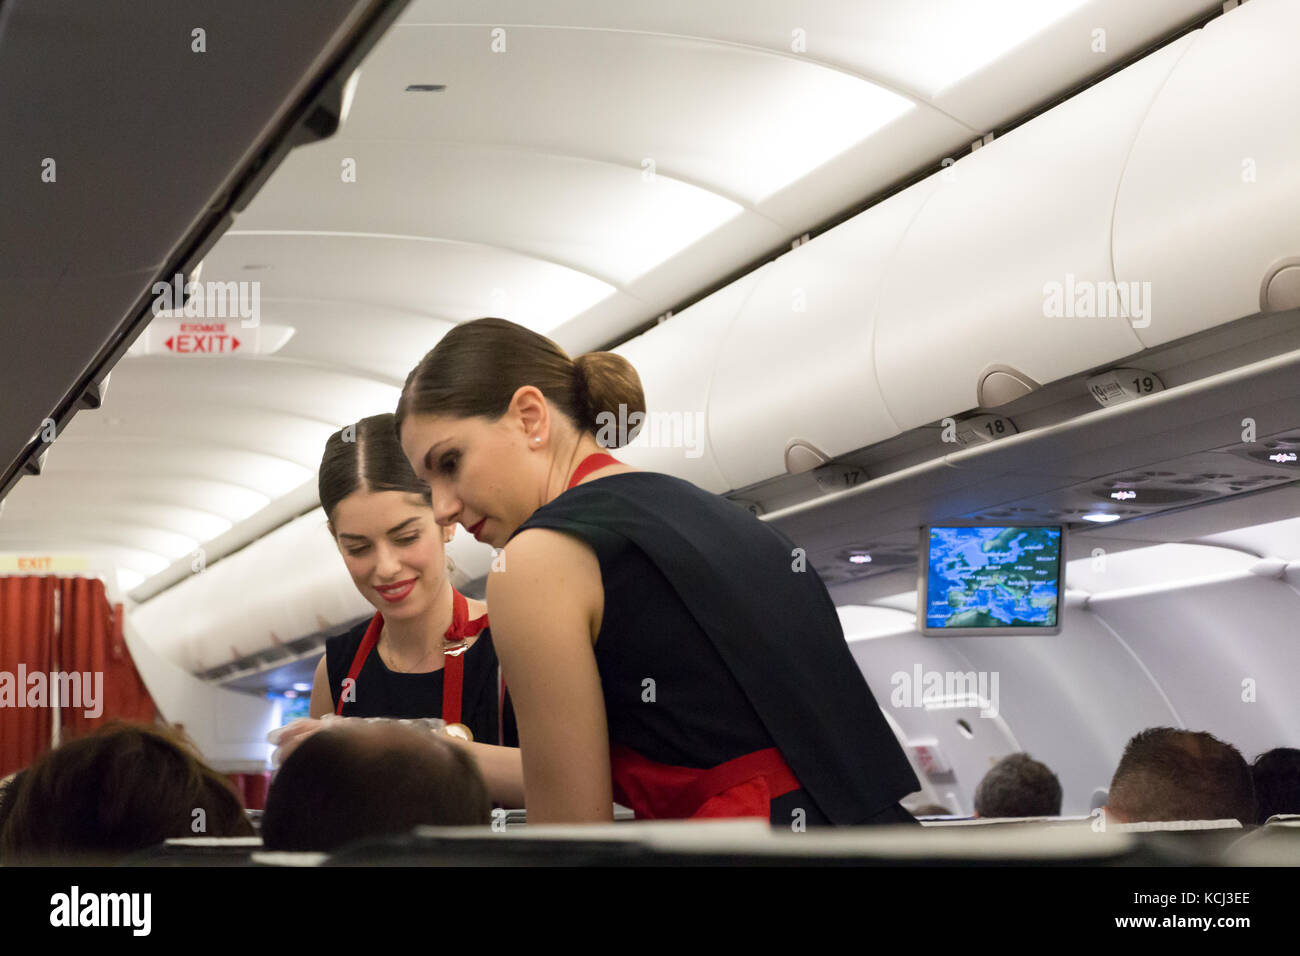 Munich, Germany - September 21th, 2017: Two female flight attendants are serving the meal in the economy class, - Stock Image